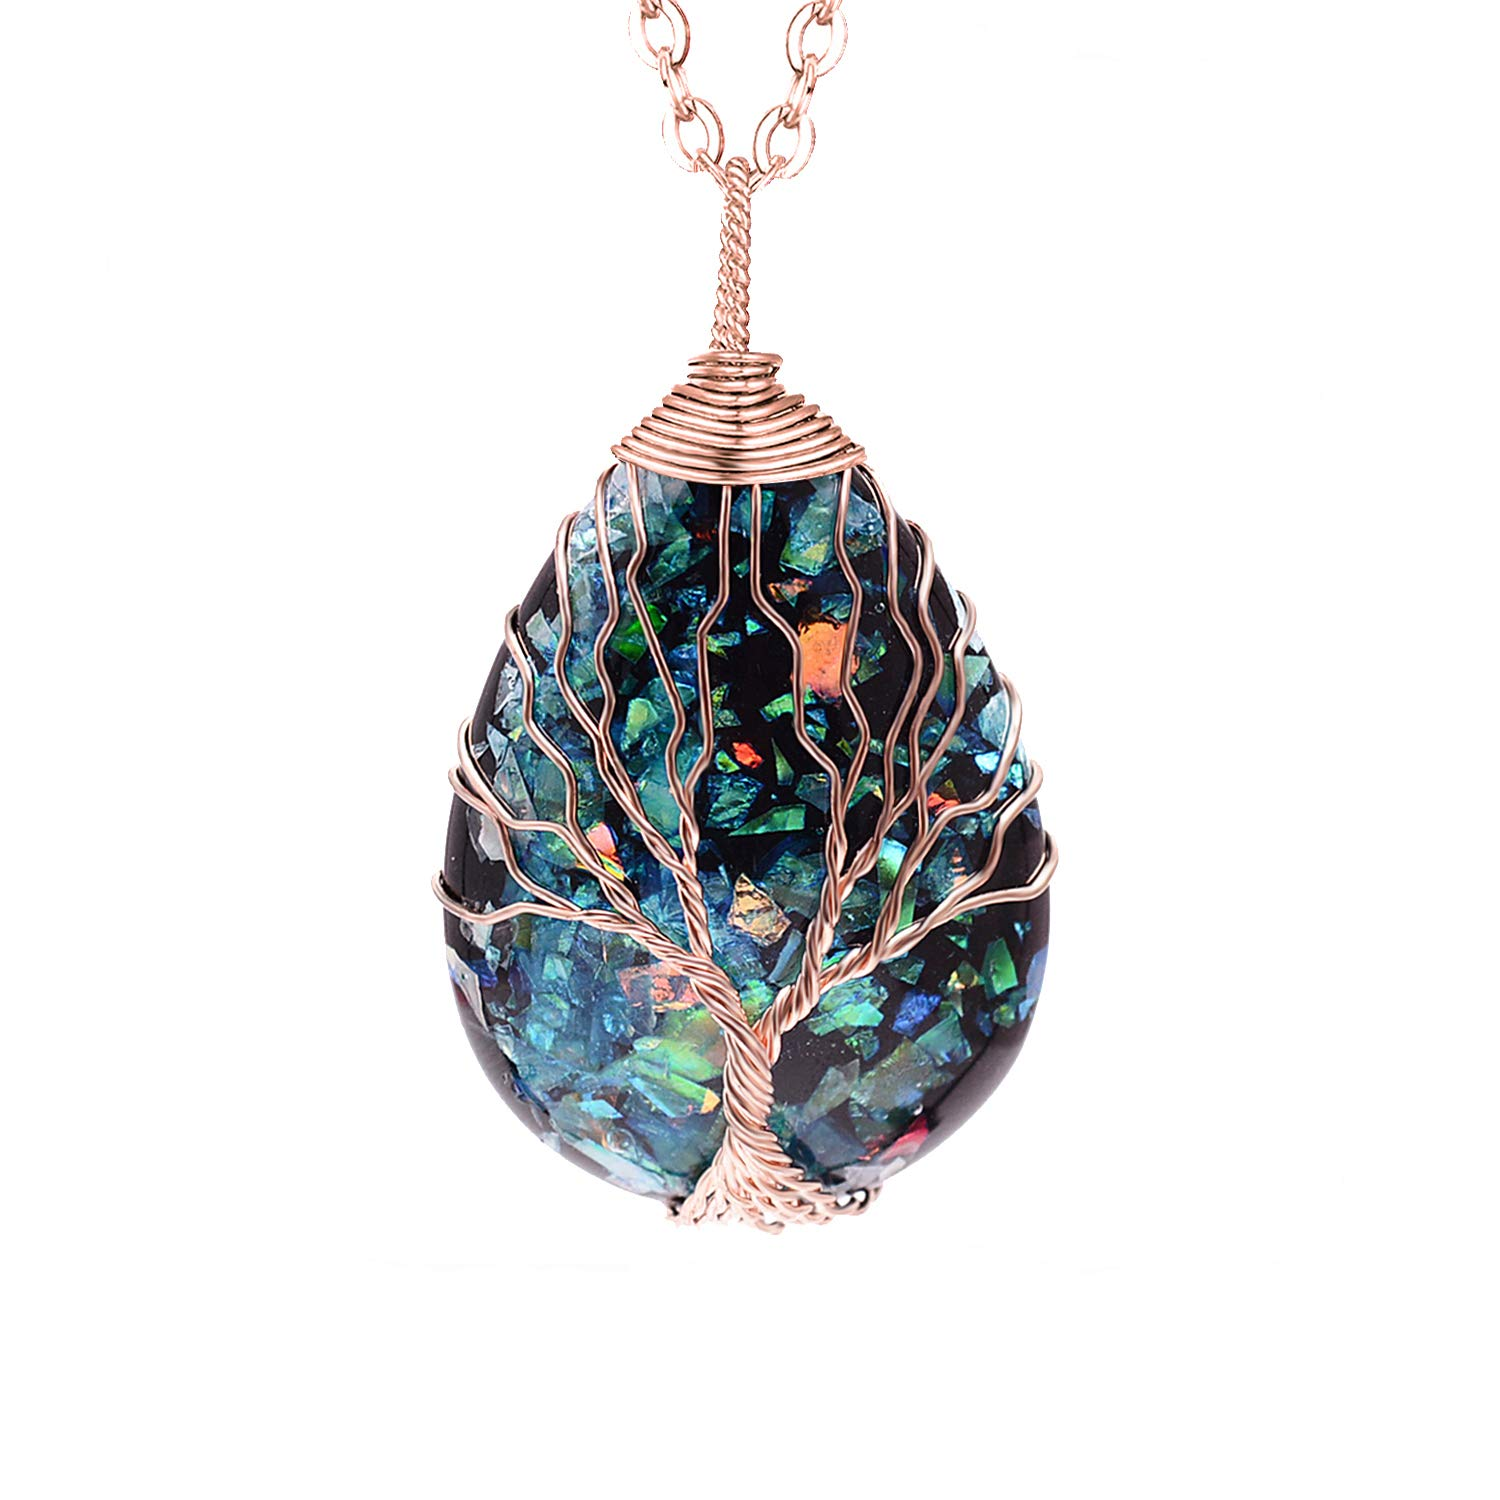 Handmade Tear Drop Healing Crystal Necklace Wire Wrapped Tree of Life Pendant Rose Gold Plated Opal Natural Stone Jewelry Birthday Gift for Women Men